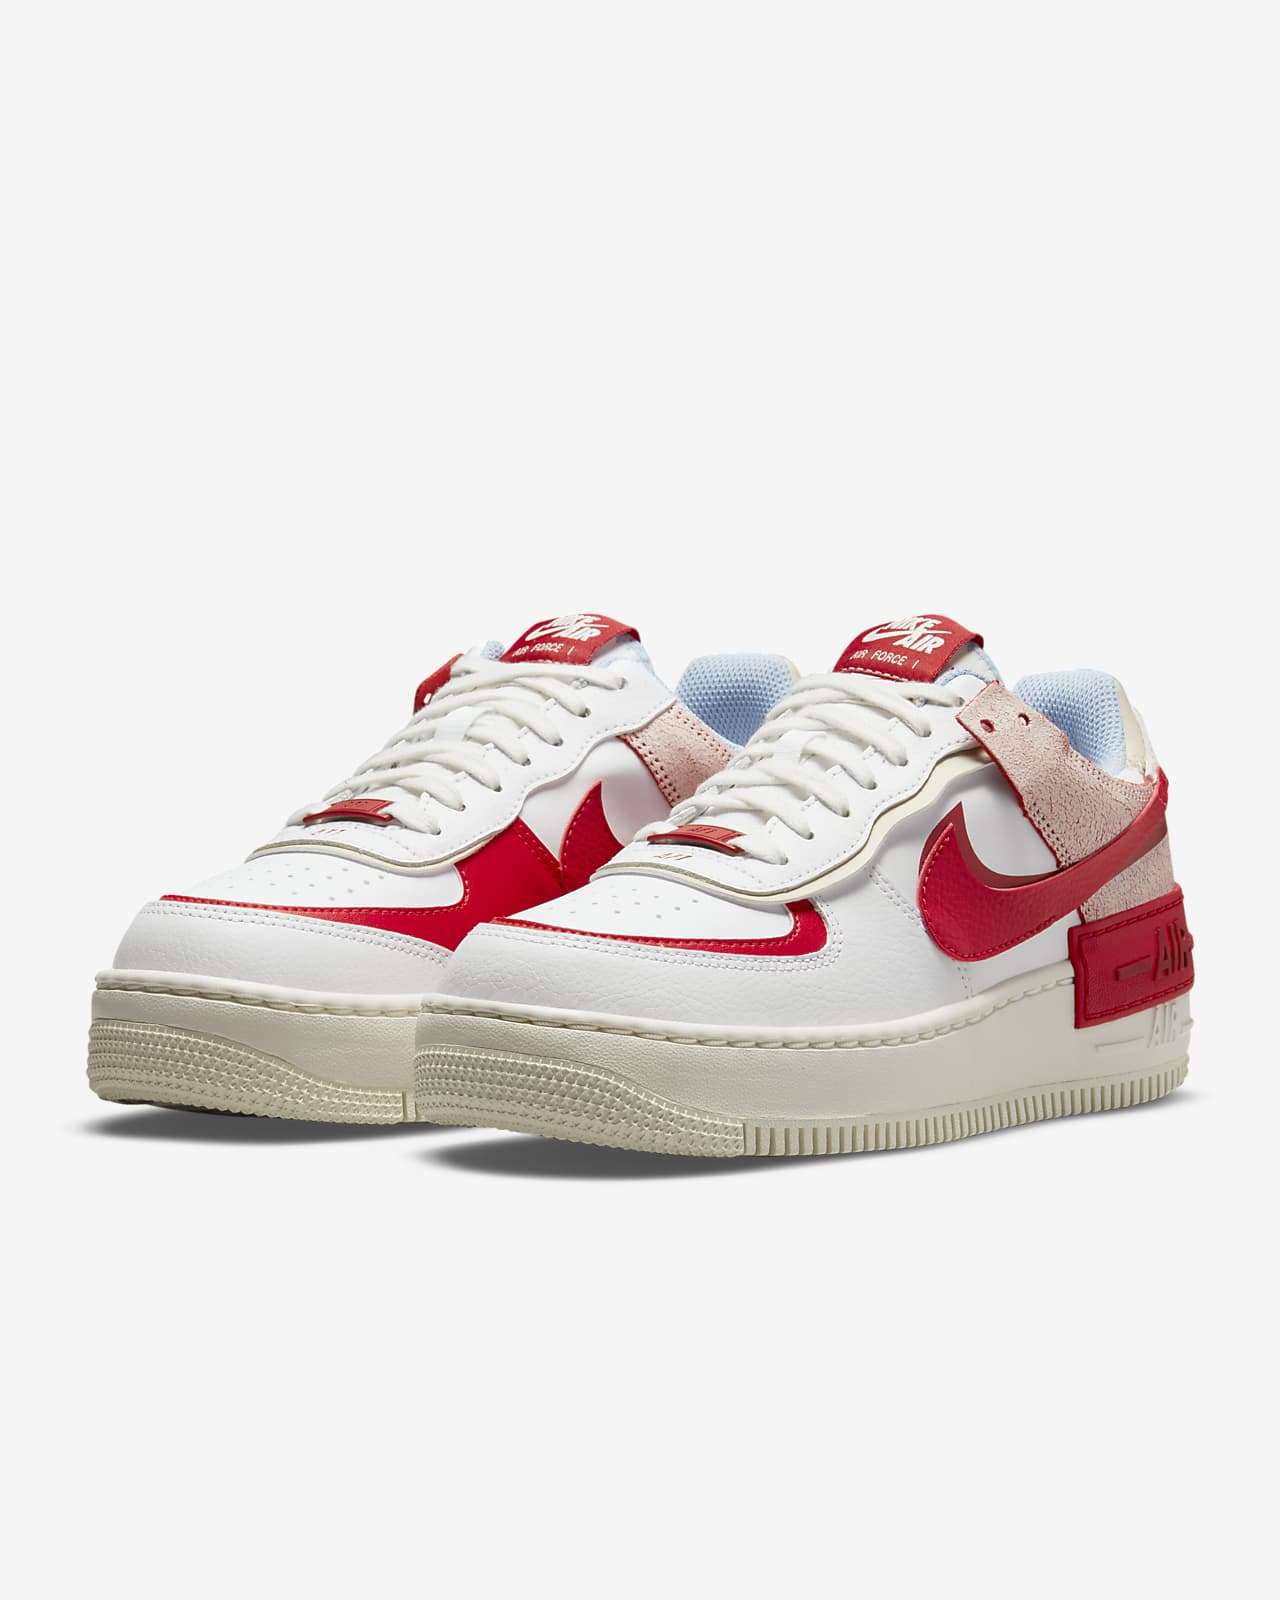 Nike Air Force 1 Shadow Women's Shoes. Nike IL